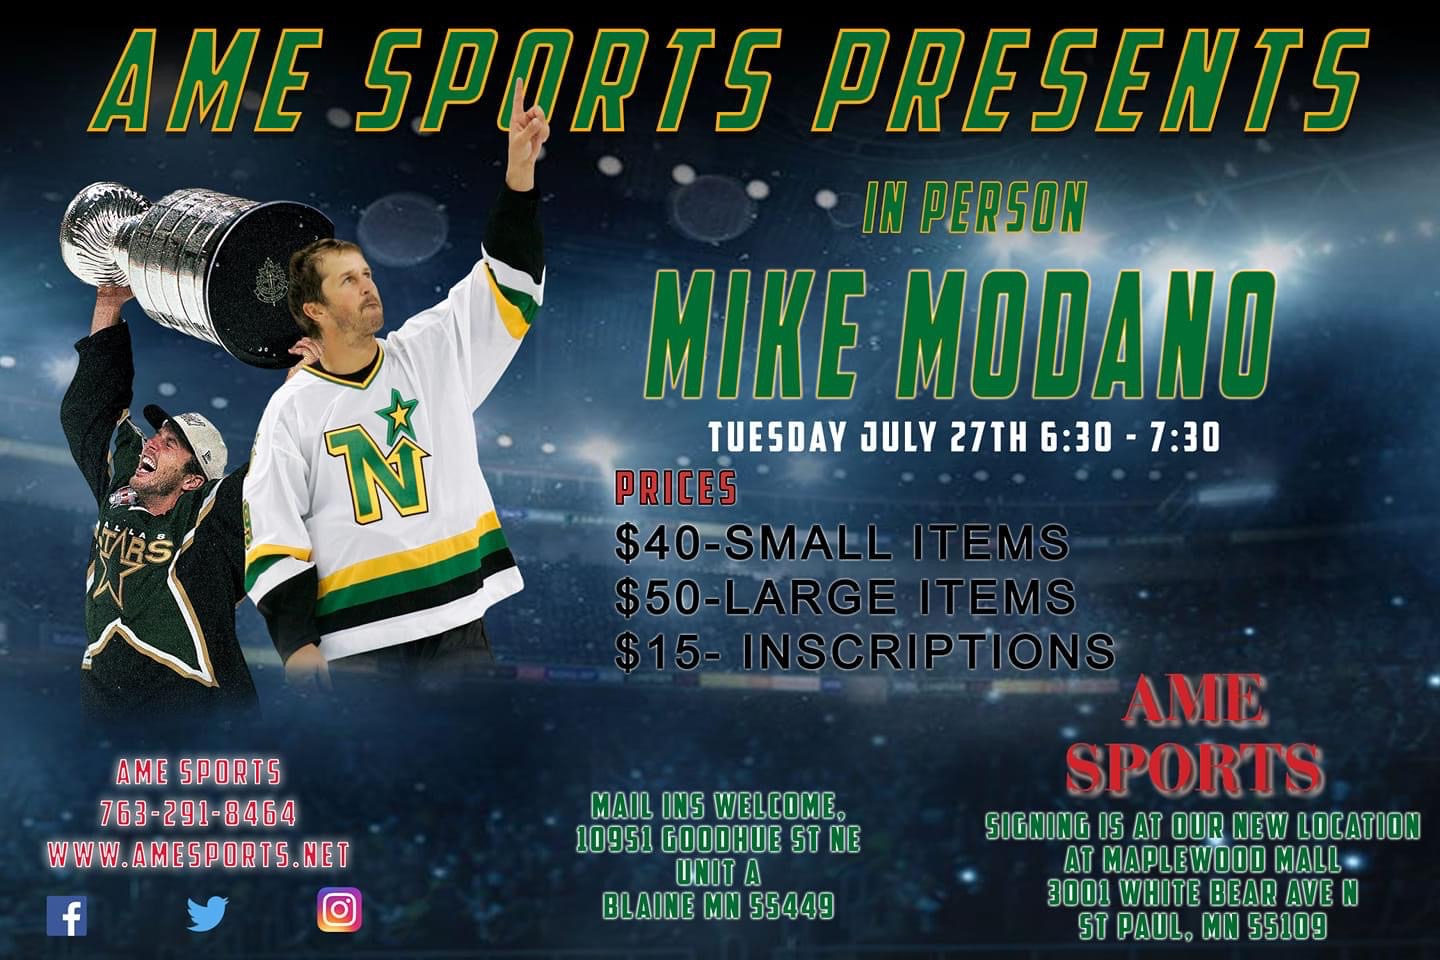 Mike Modano signing event at Maplewood Mall in St. Paul, MN